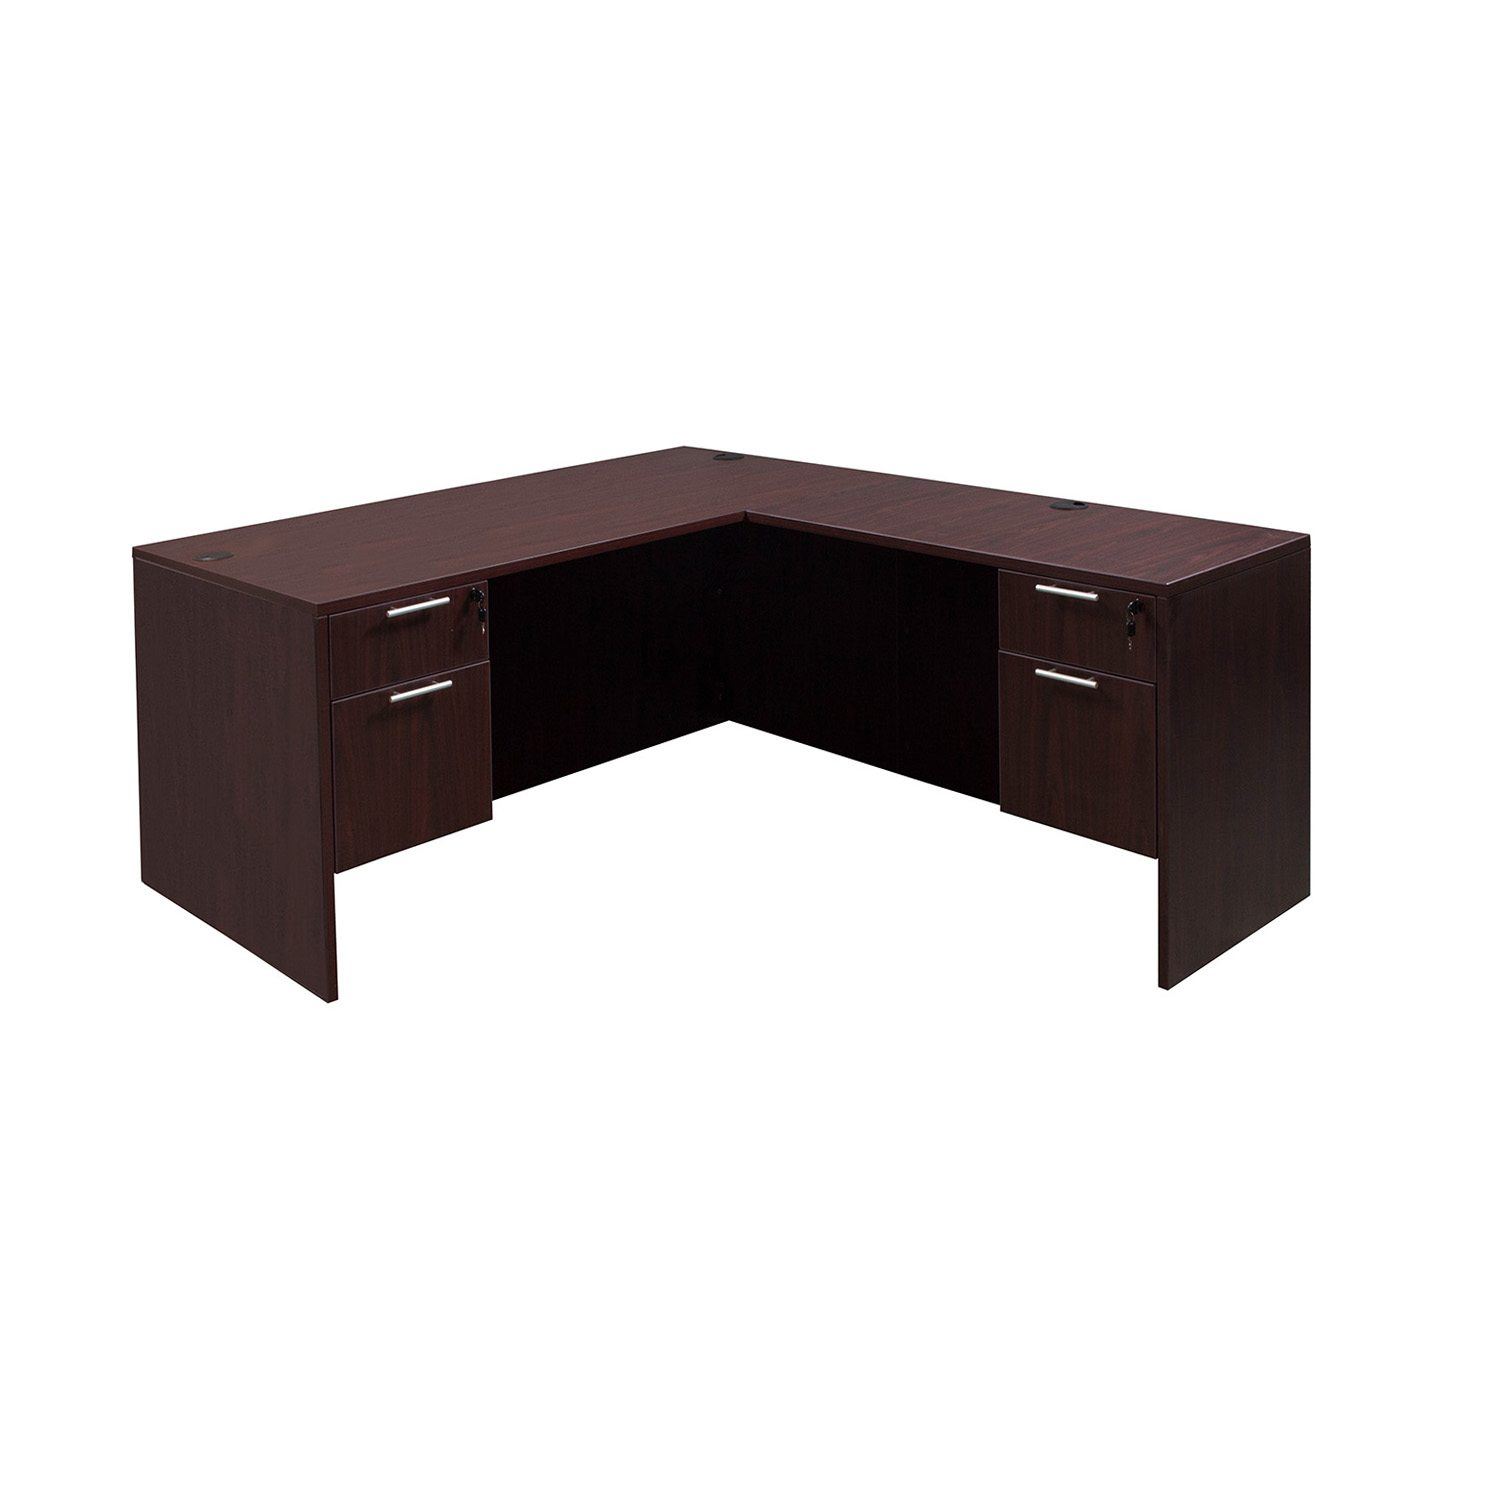 Everyday 30 215 60 20 215 42 Laminate L Shape Desk Mahogany